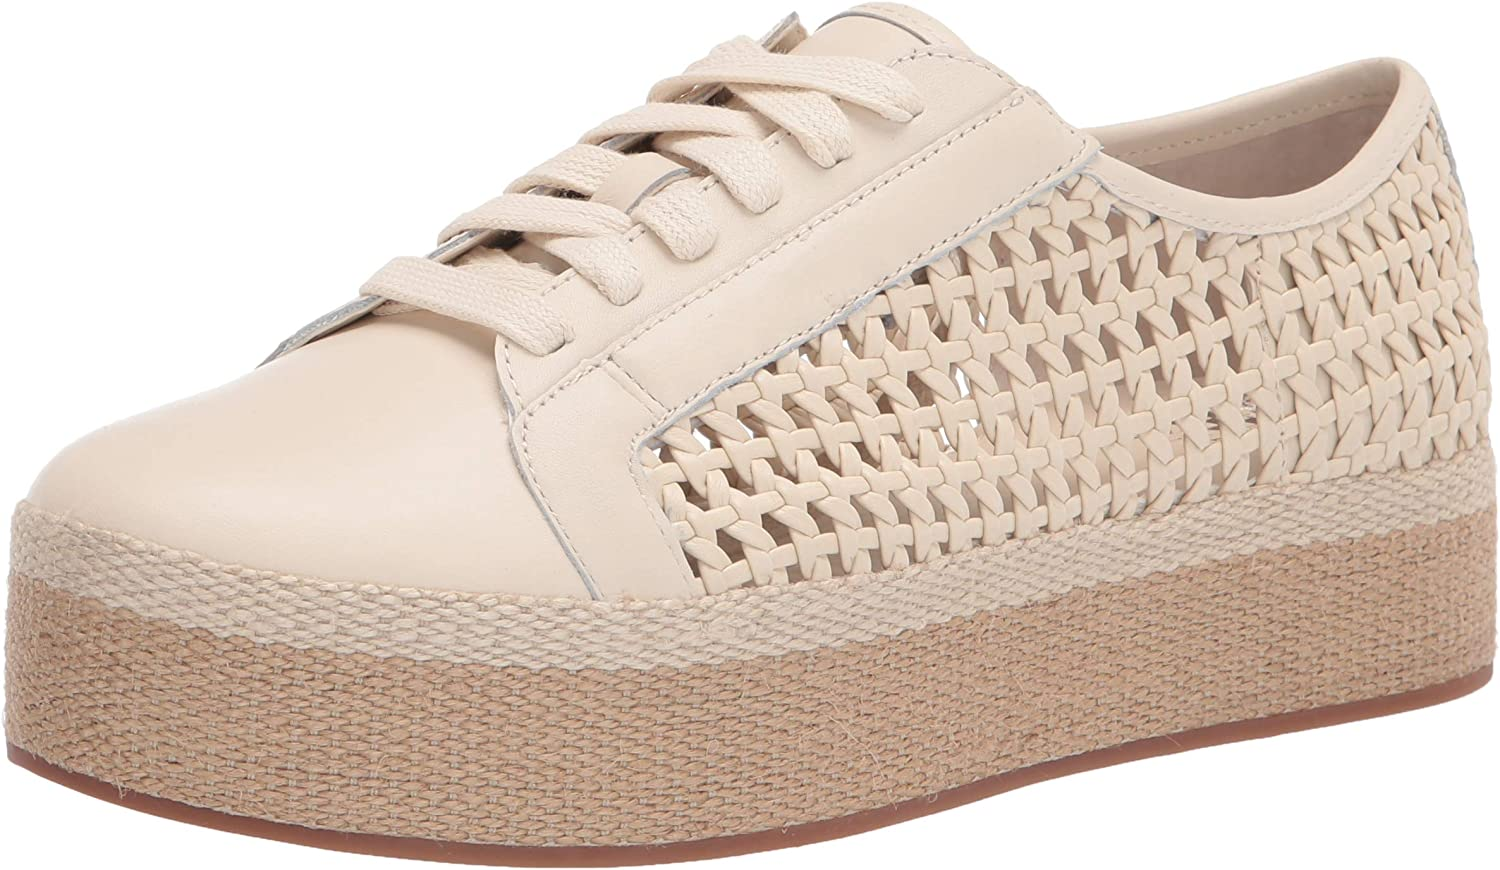 Vince Camuto OFFicial Indianapolis Mall site Women's Merlea Platform Sneaker Woven